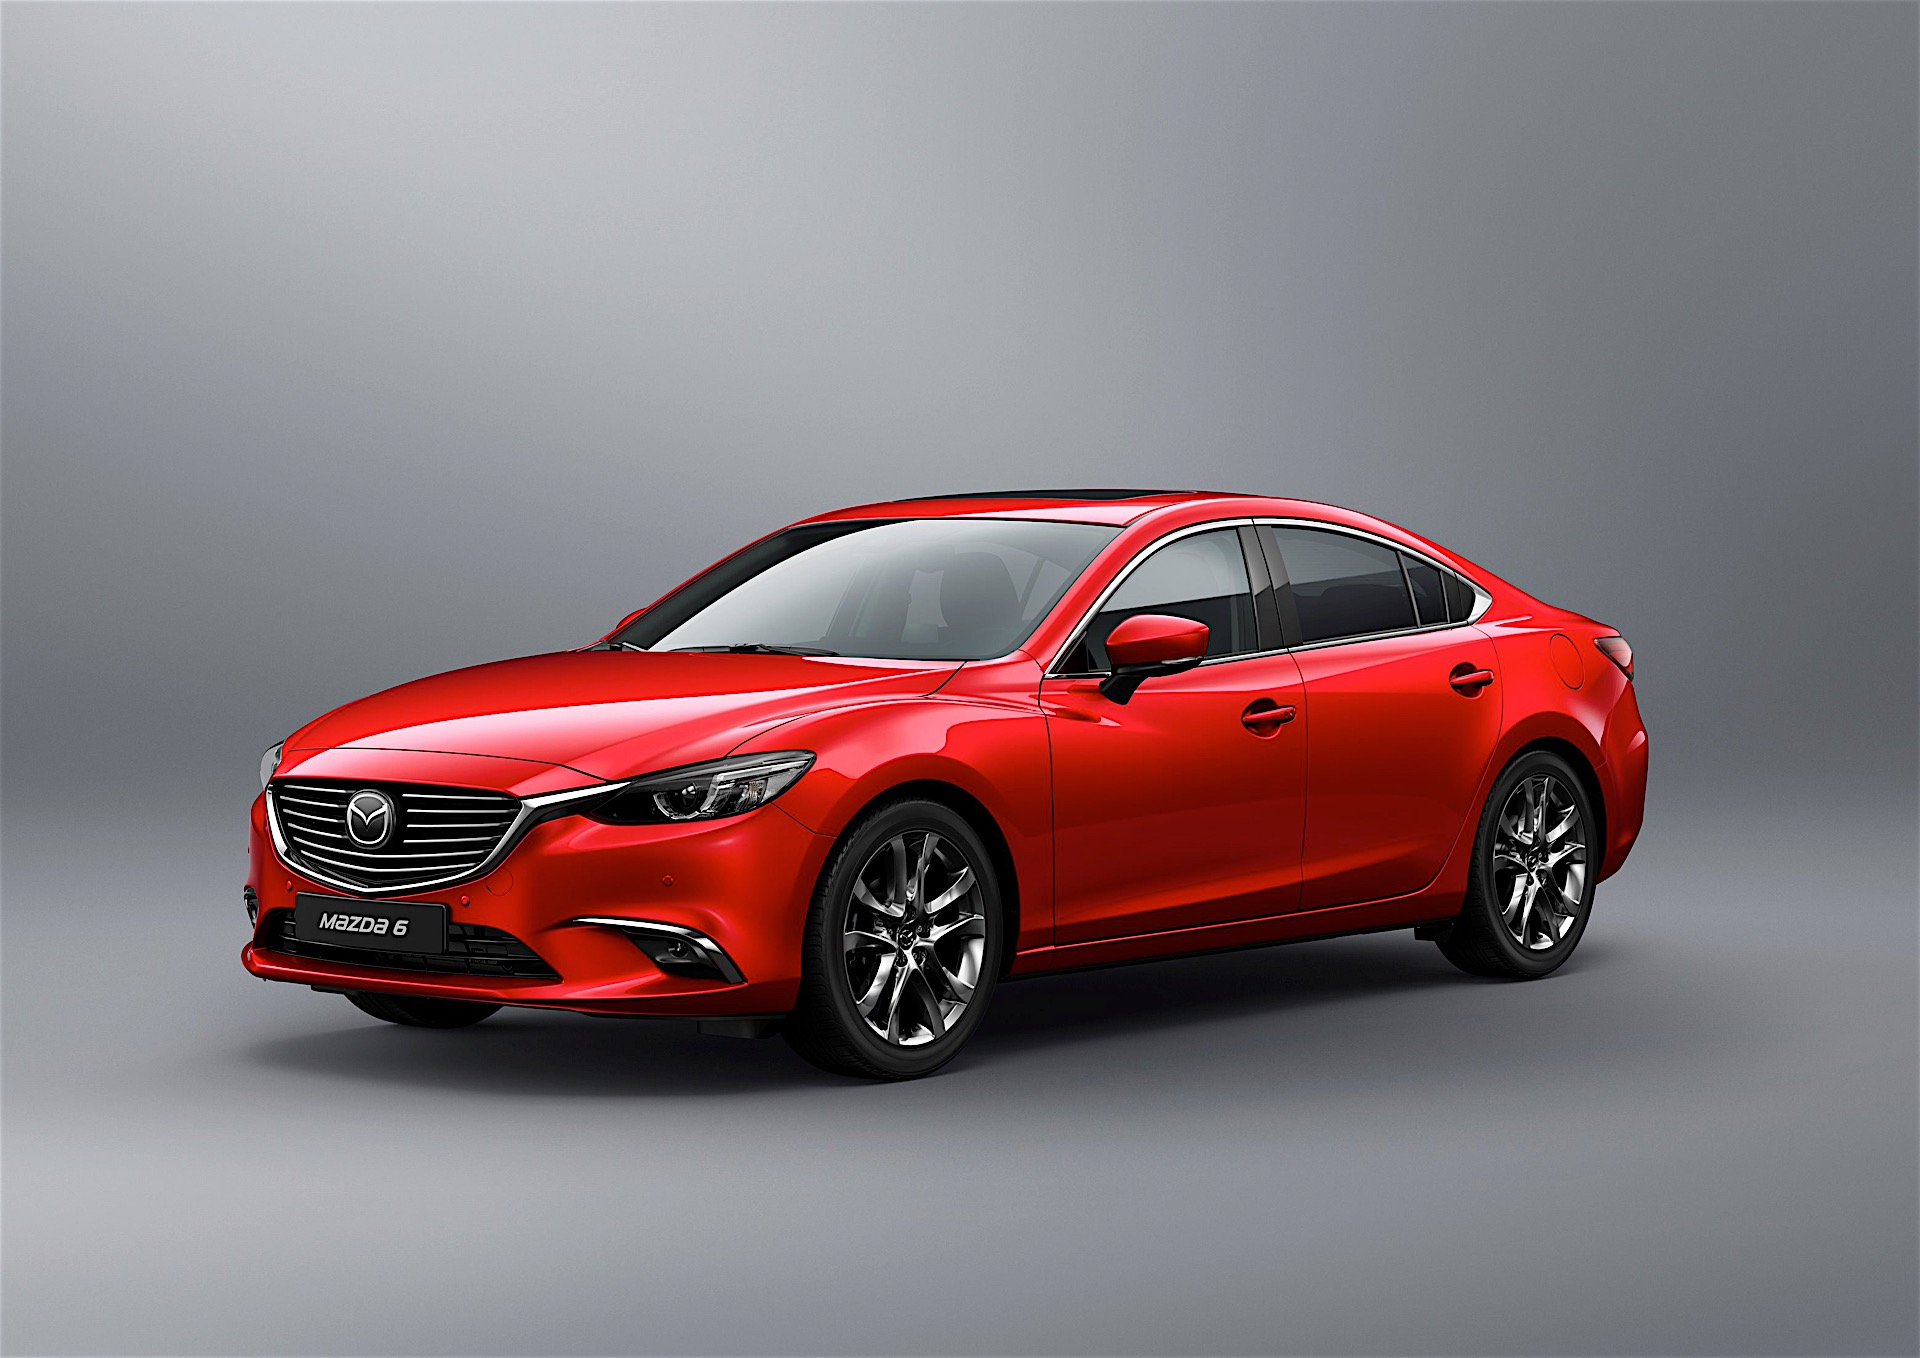 2017 mazda6 will be launched in europe this autumn has g vectoring control autoevolution. Black Bedroom Furniture Sets. Home Design Ideas